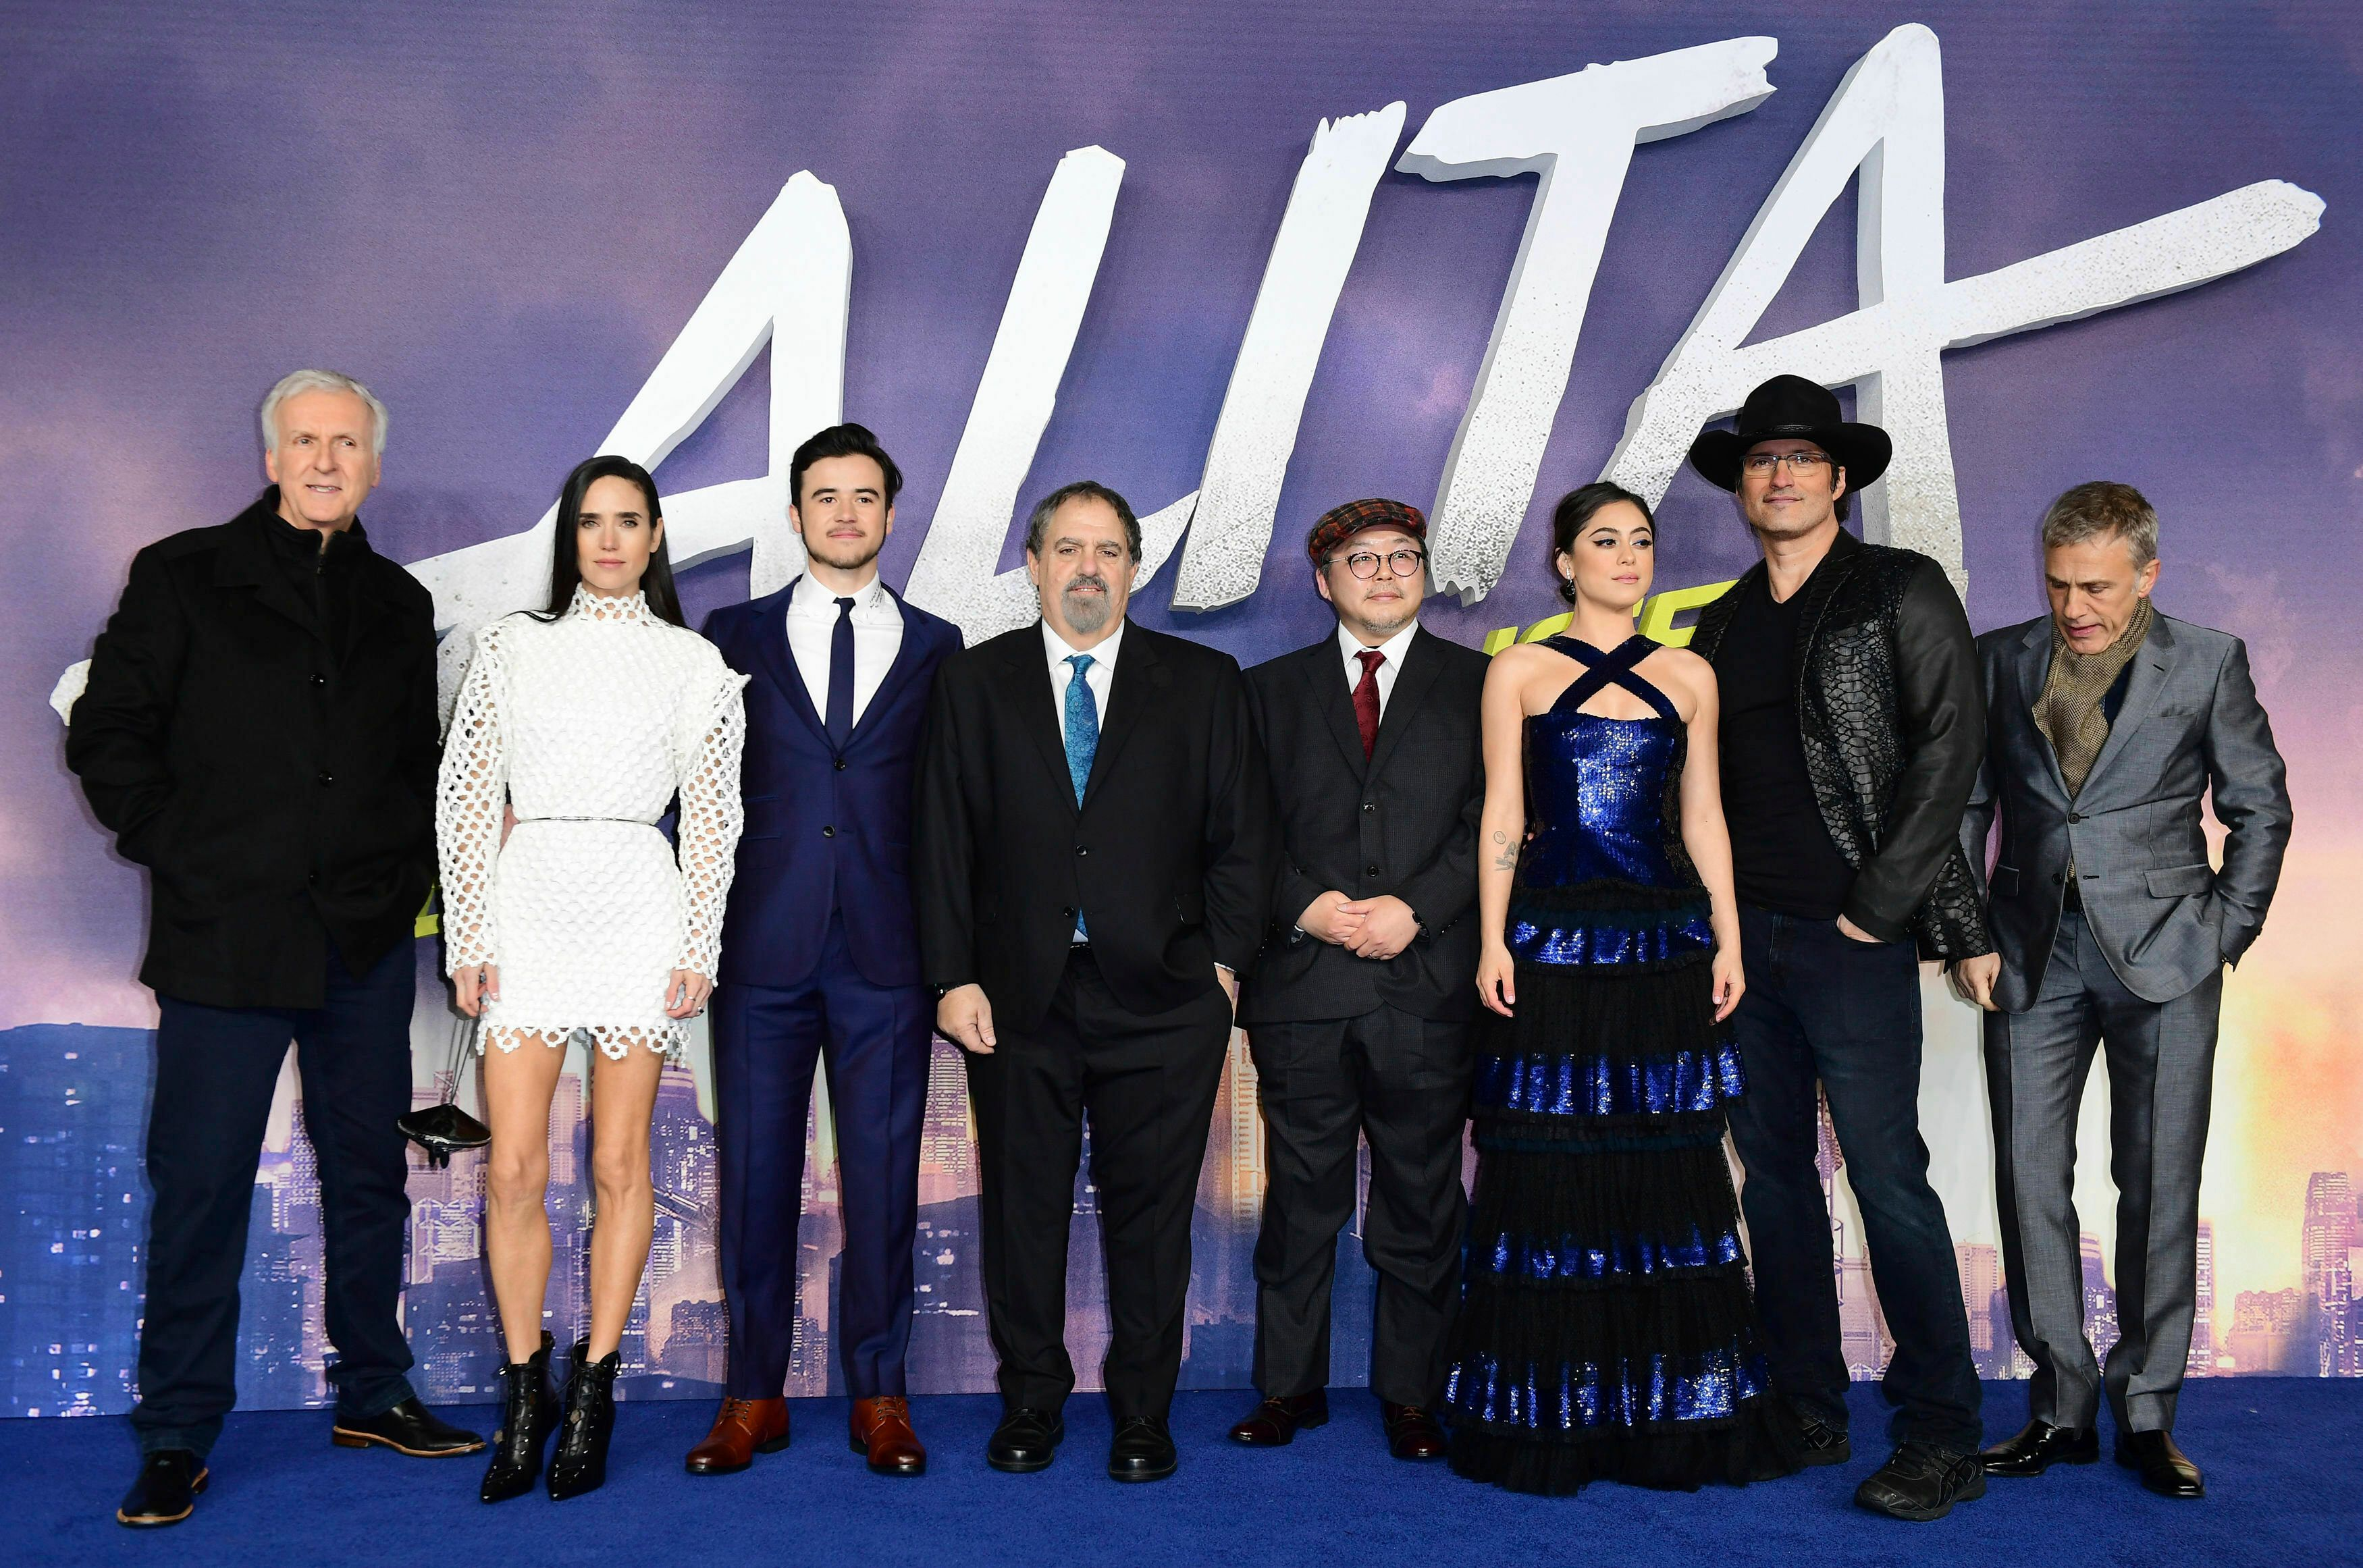 'Alita: Battle Angel' Premieres In